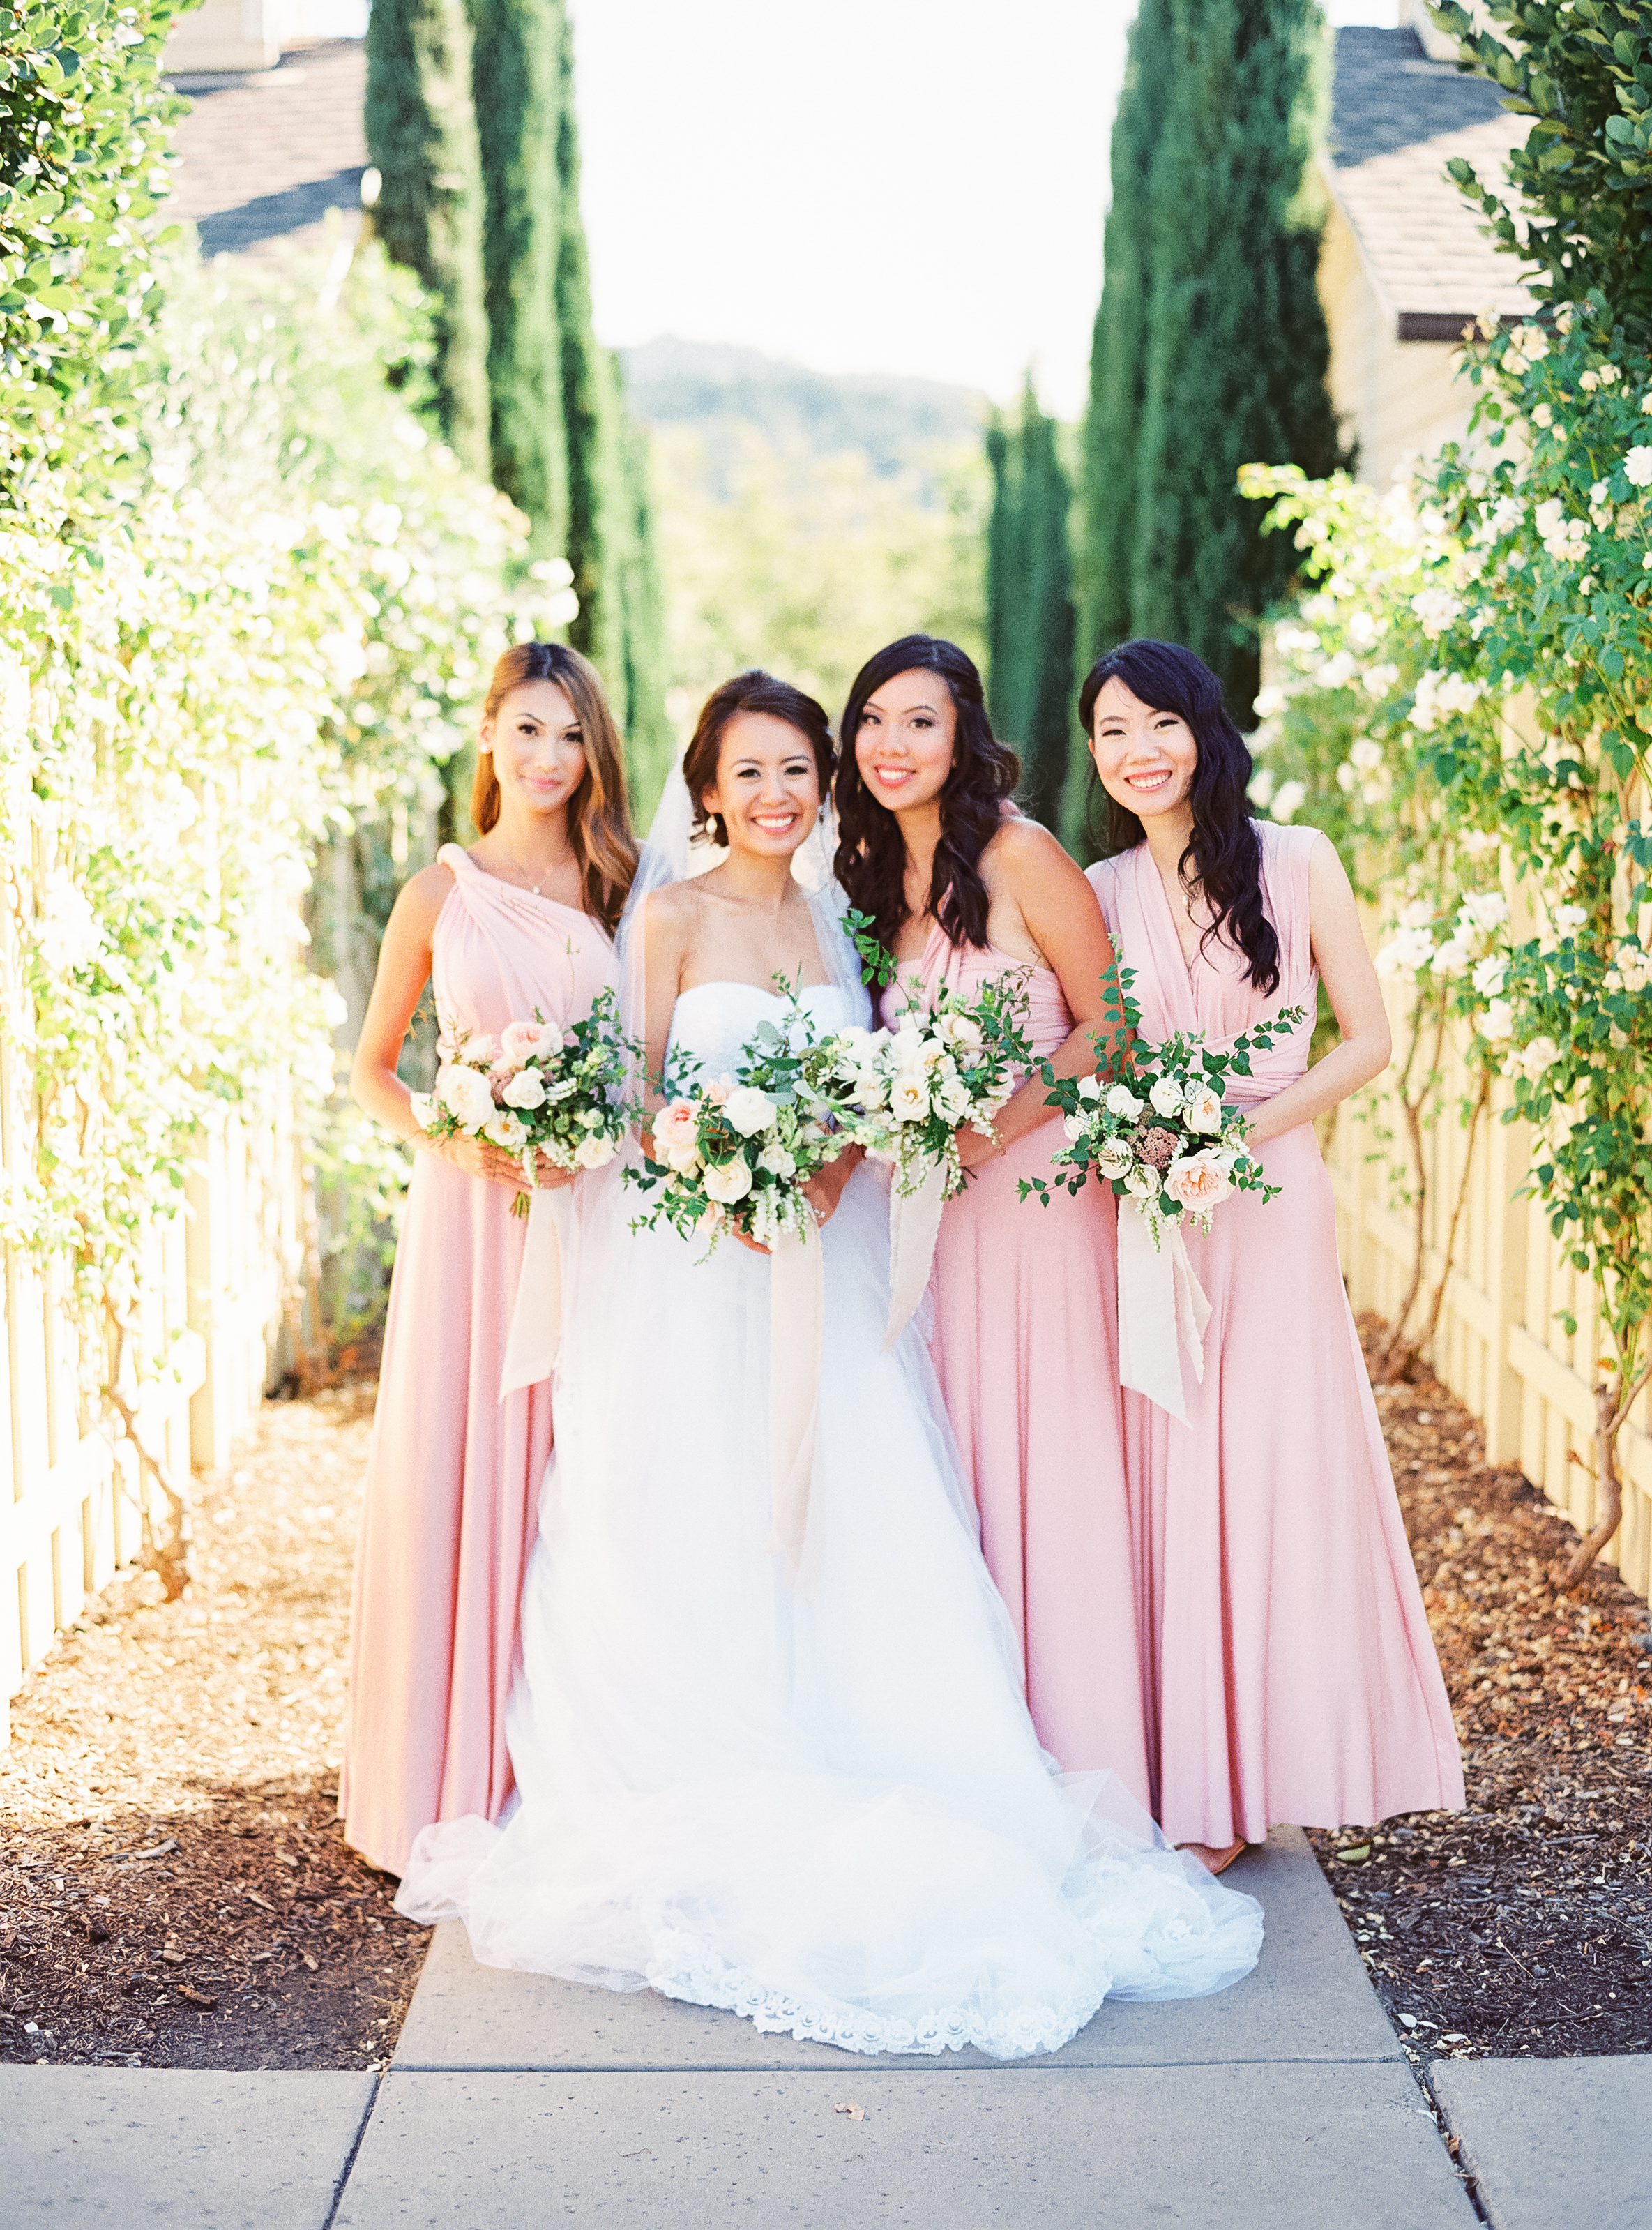 Napa Valley Wedding | Michele Beckwith | Chinese Wedding | Vineyard Wedding | Fine Art Wedding Blog | Joy Wed | Blush Bridesmaids Dress | Organic Wedding Bouquet